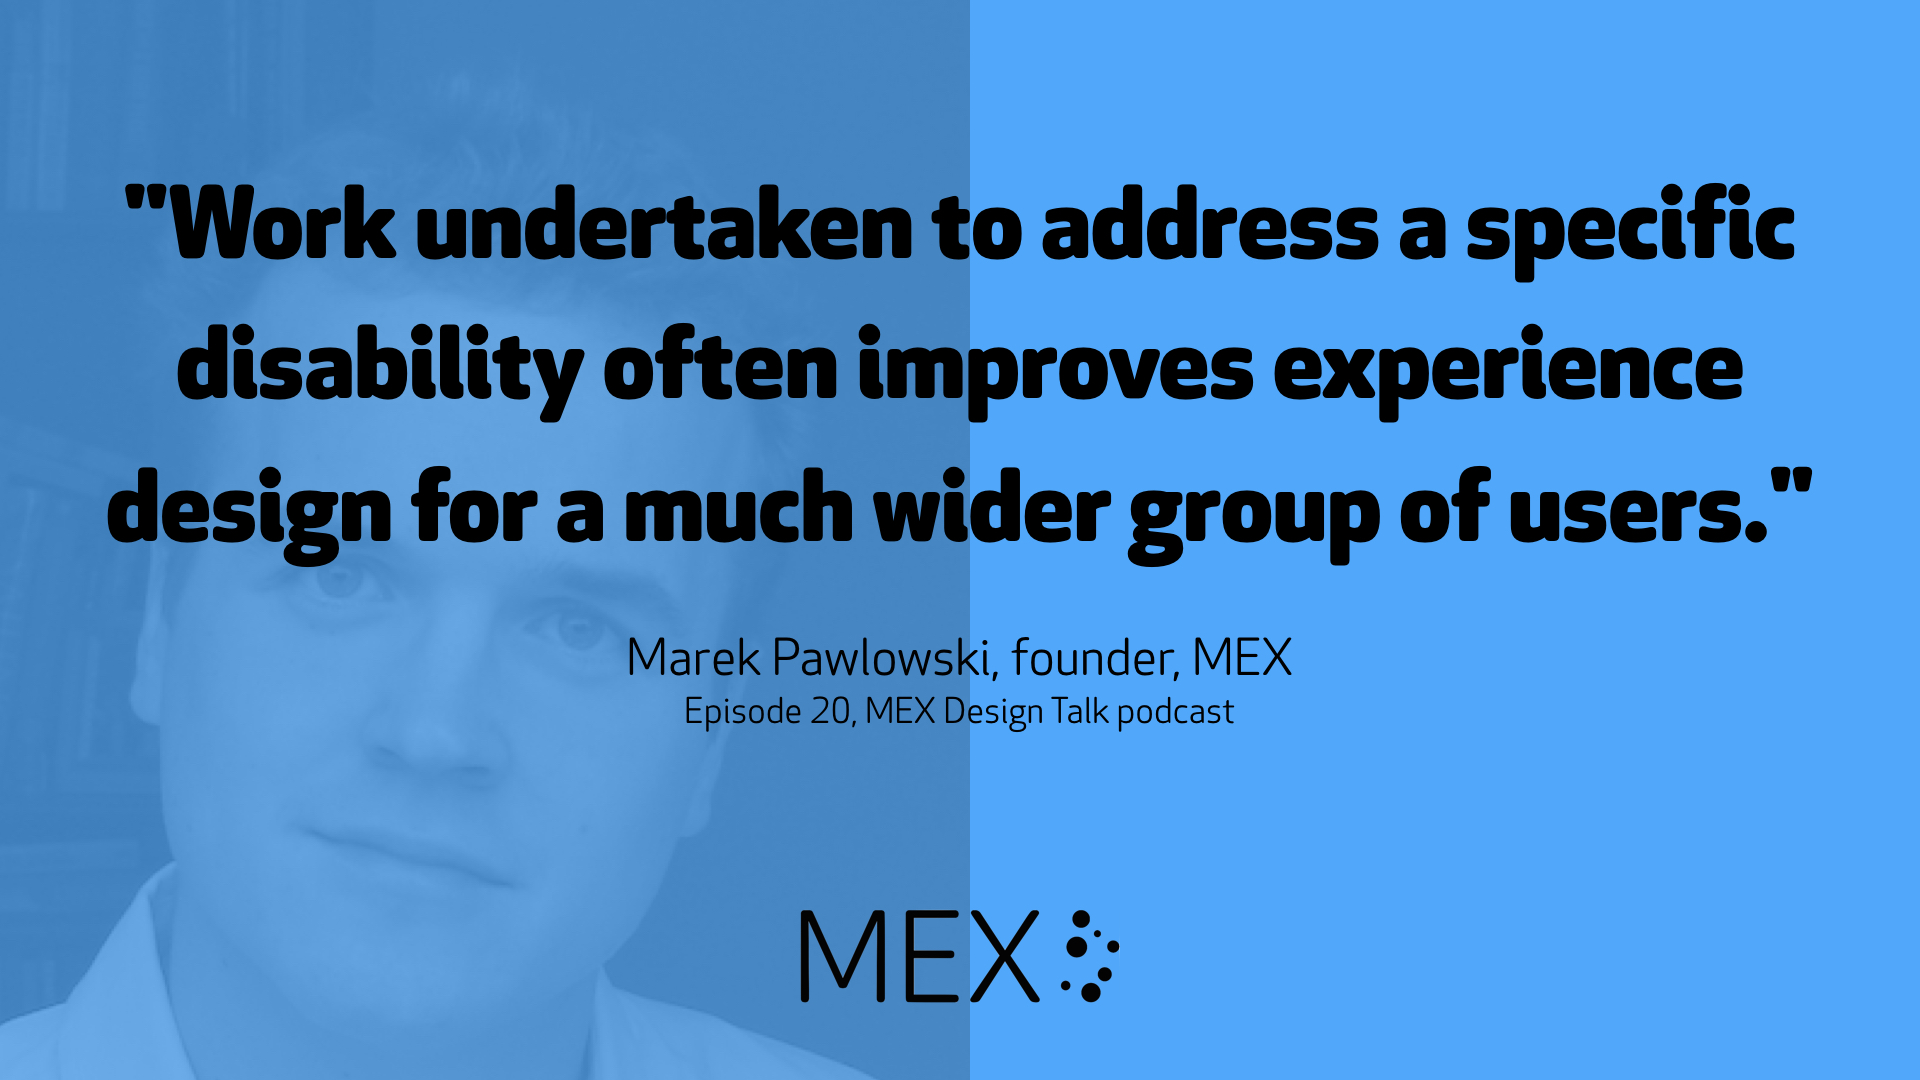 """Work undertaken to address a specific disability often improves experience design for a much wider group of users."" -- Marek Pawlowski, founder, MEX, Episode 20, MEX Design Talk podcast"